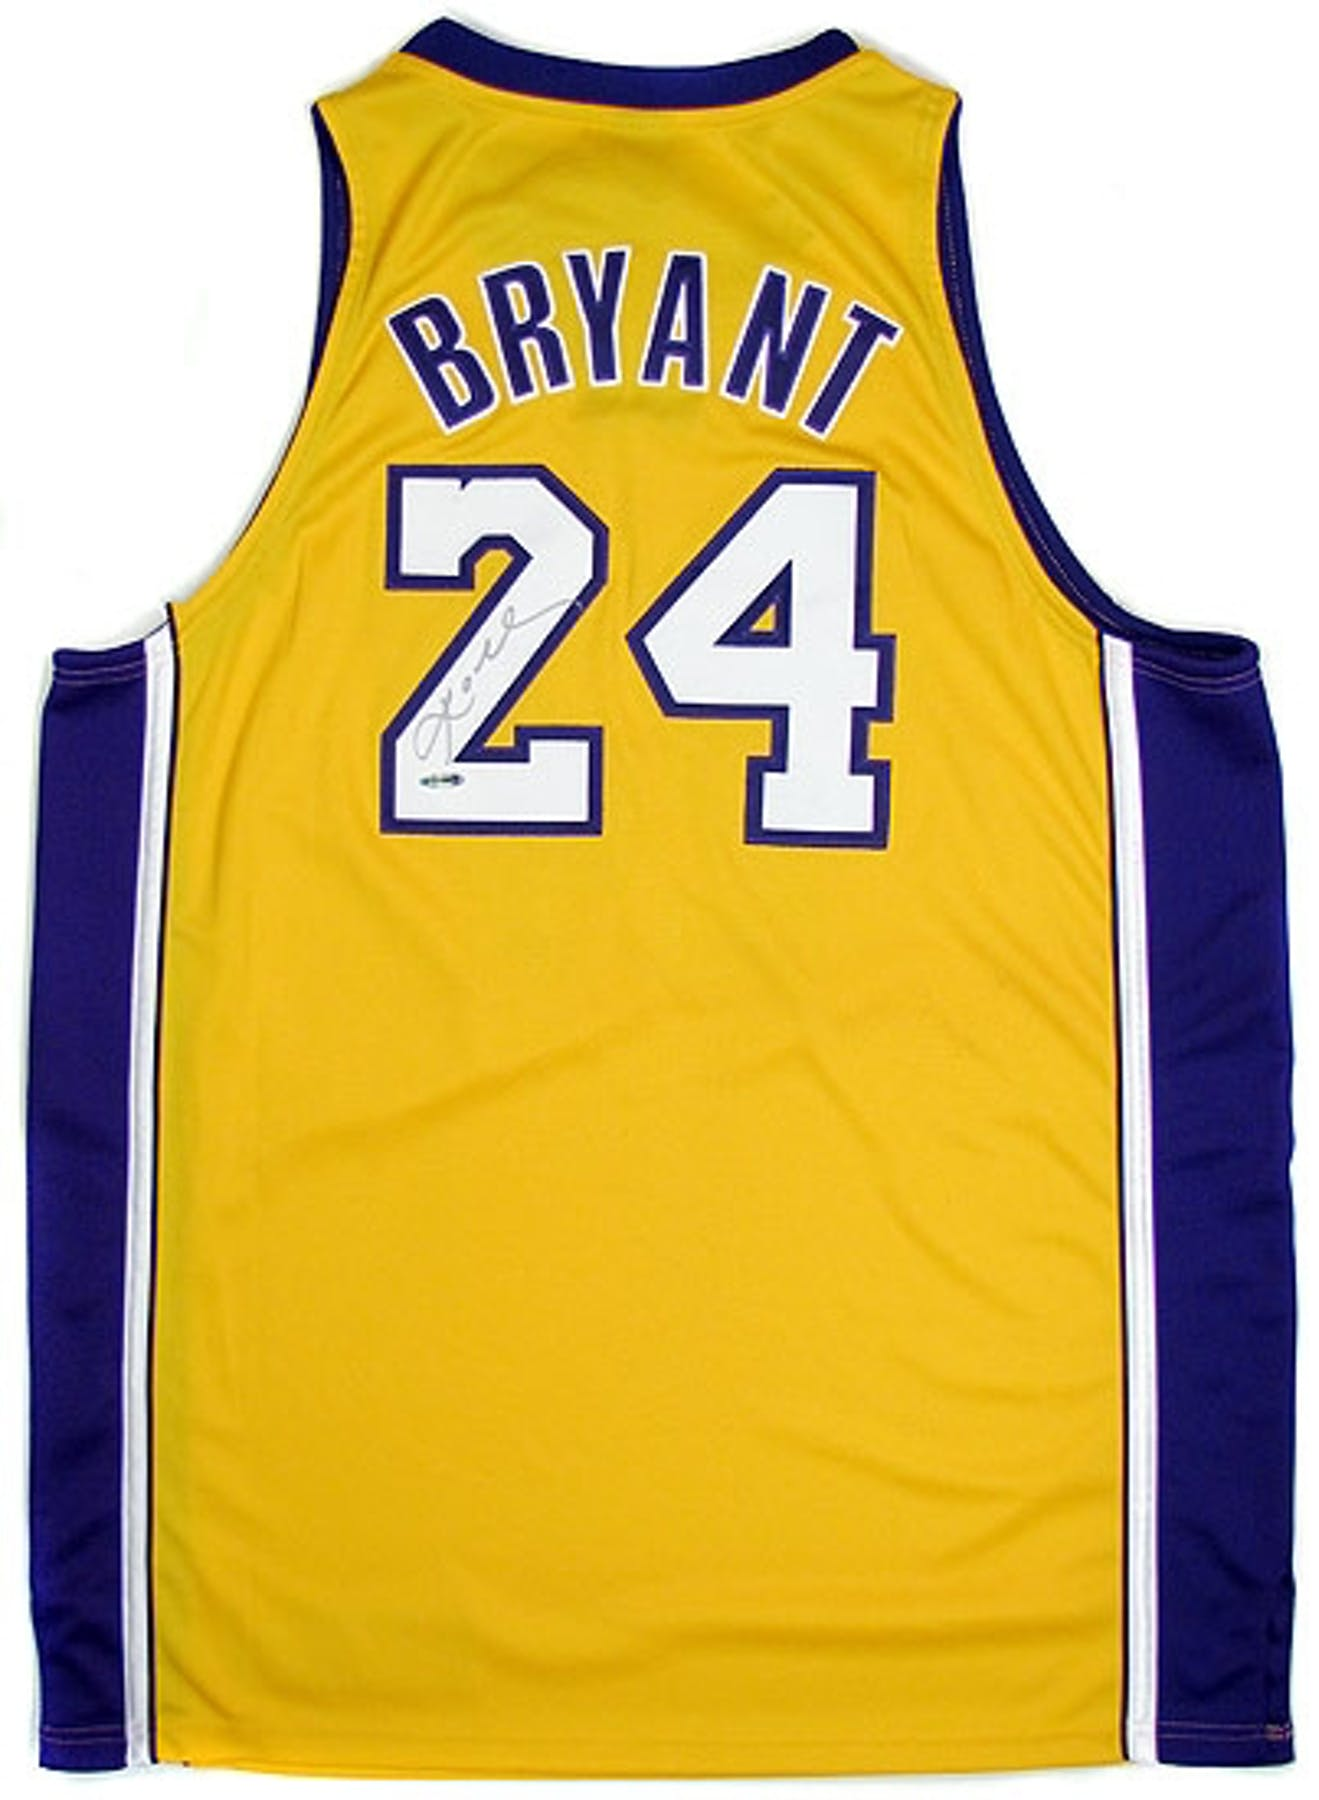 89eab21a1 Kobe Bryant Autographed L.A. Lakers Authentic Yellow Jersey  24 ...